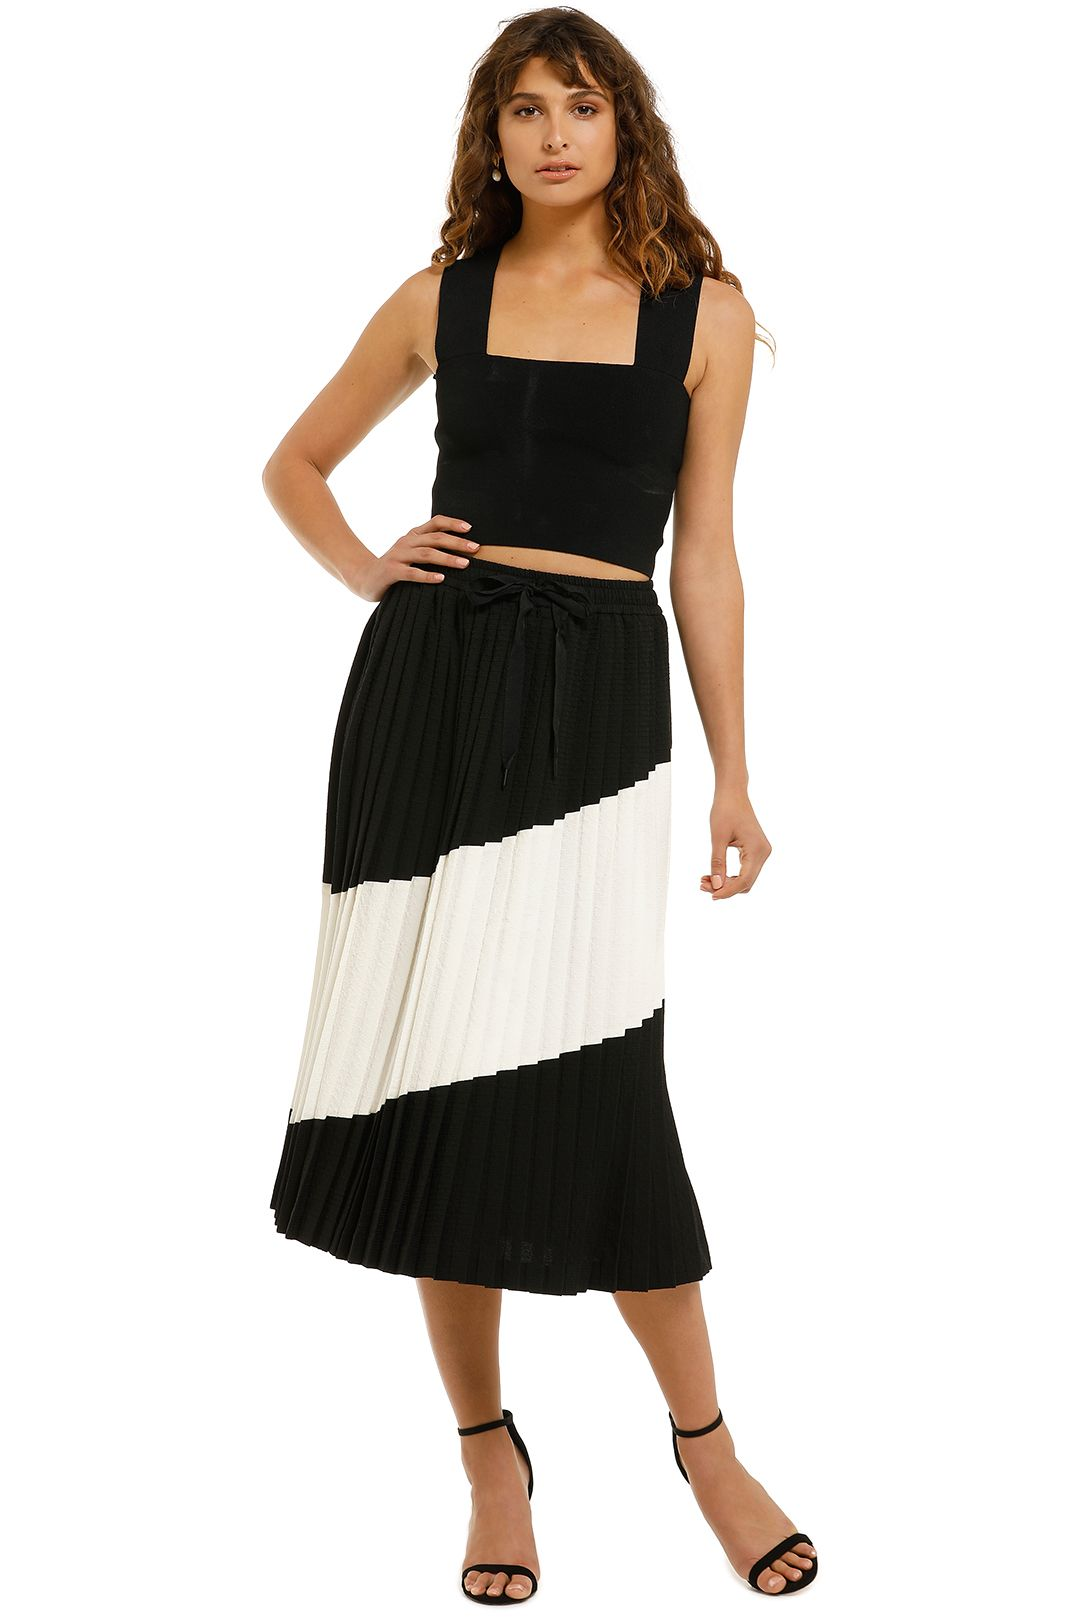 Rebecca-Vallance-Gia-Skirt-Black-And-White-Front